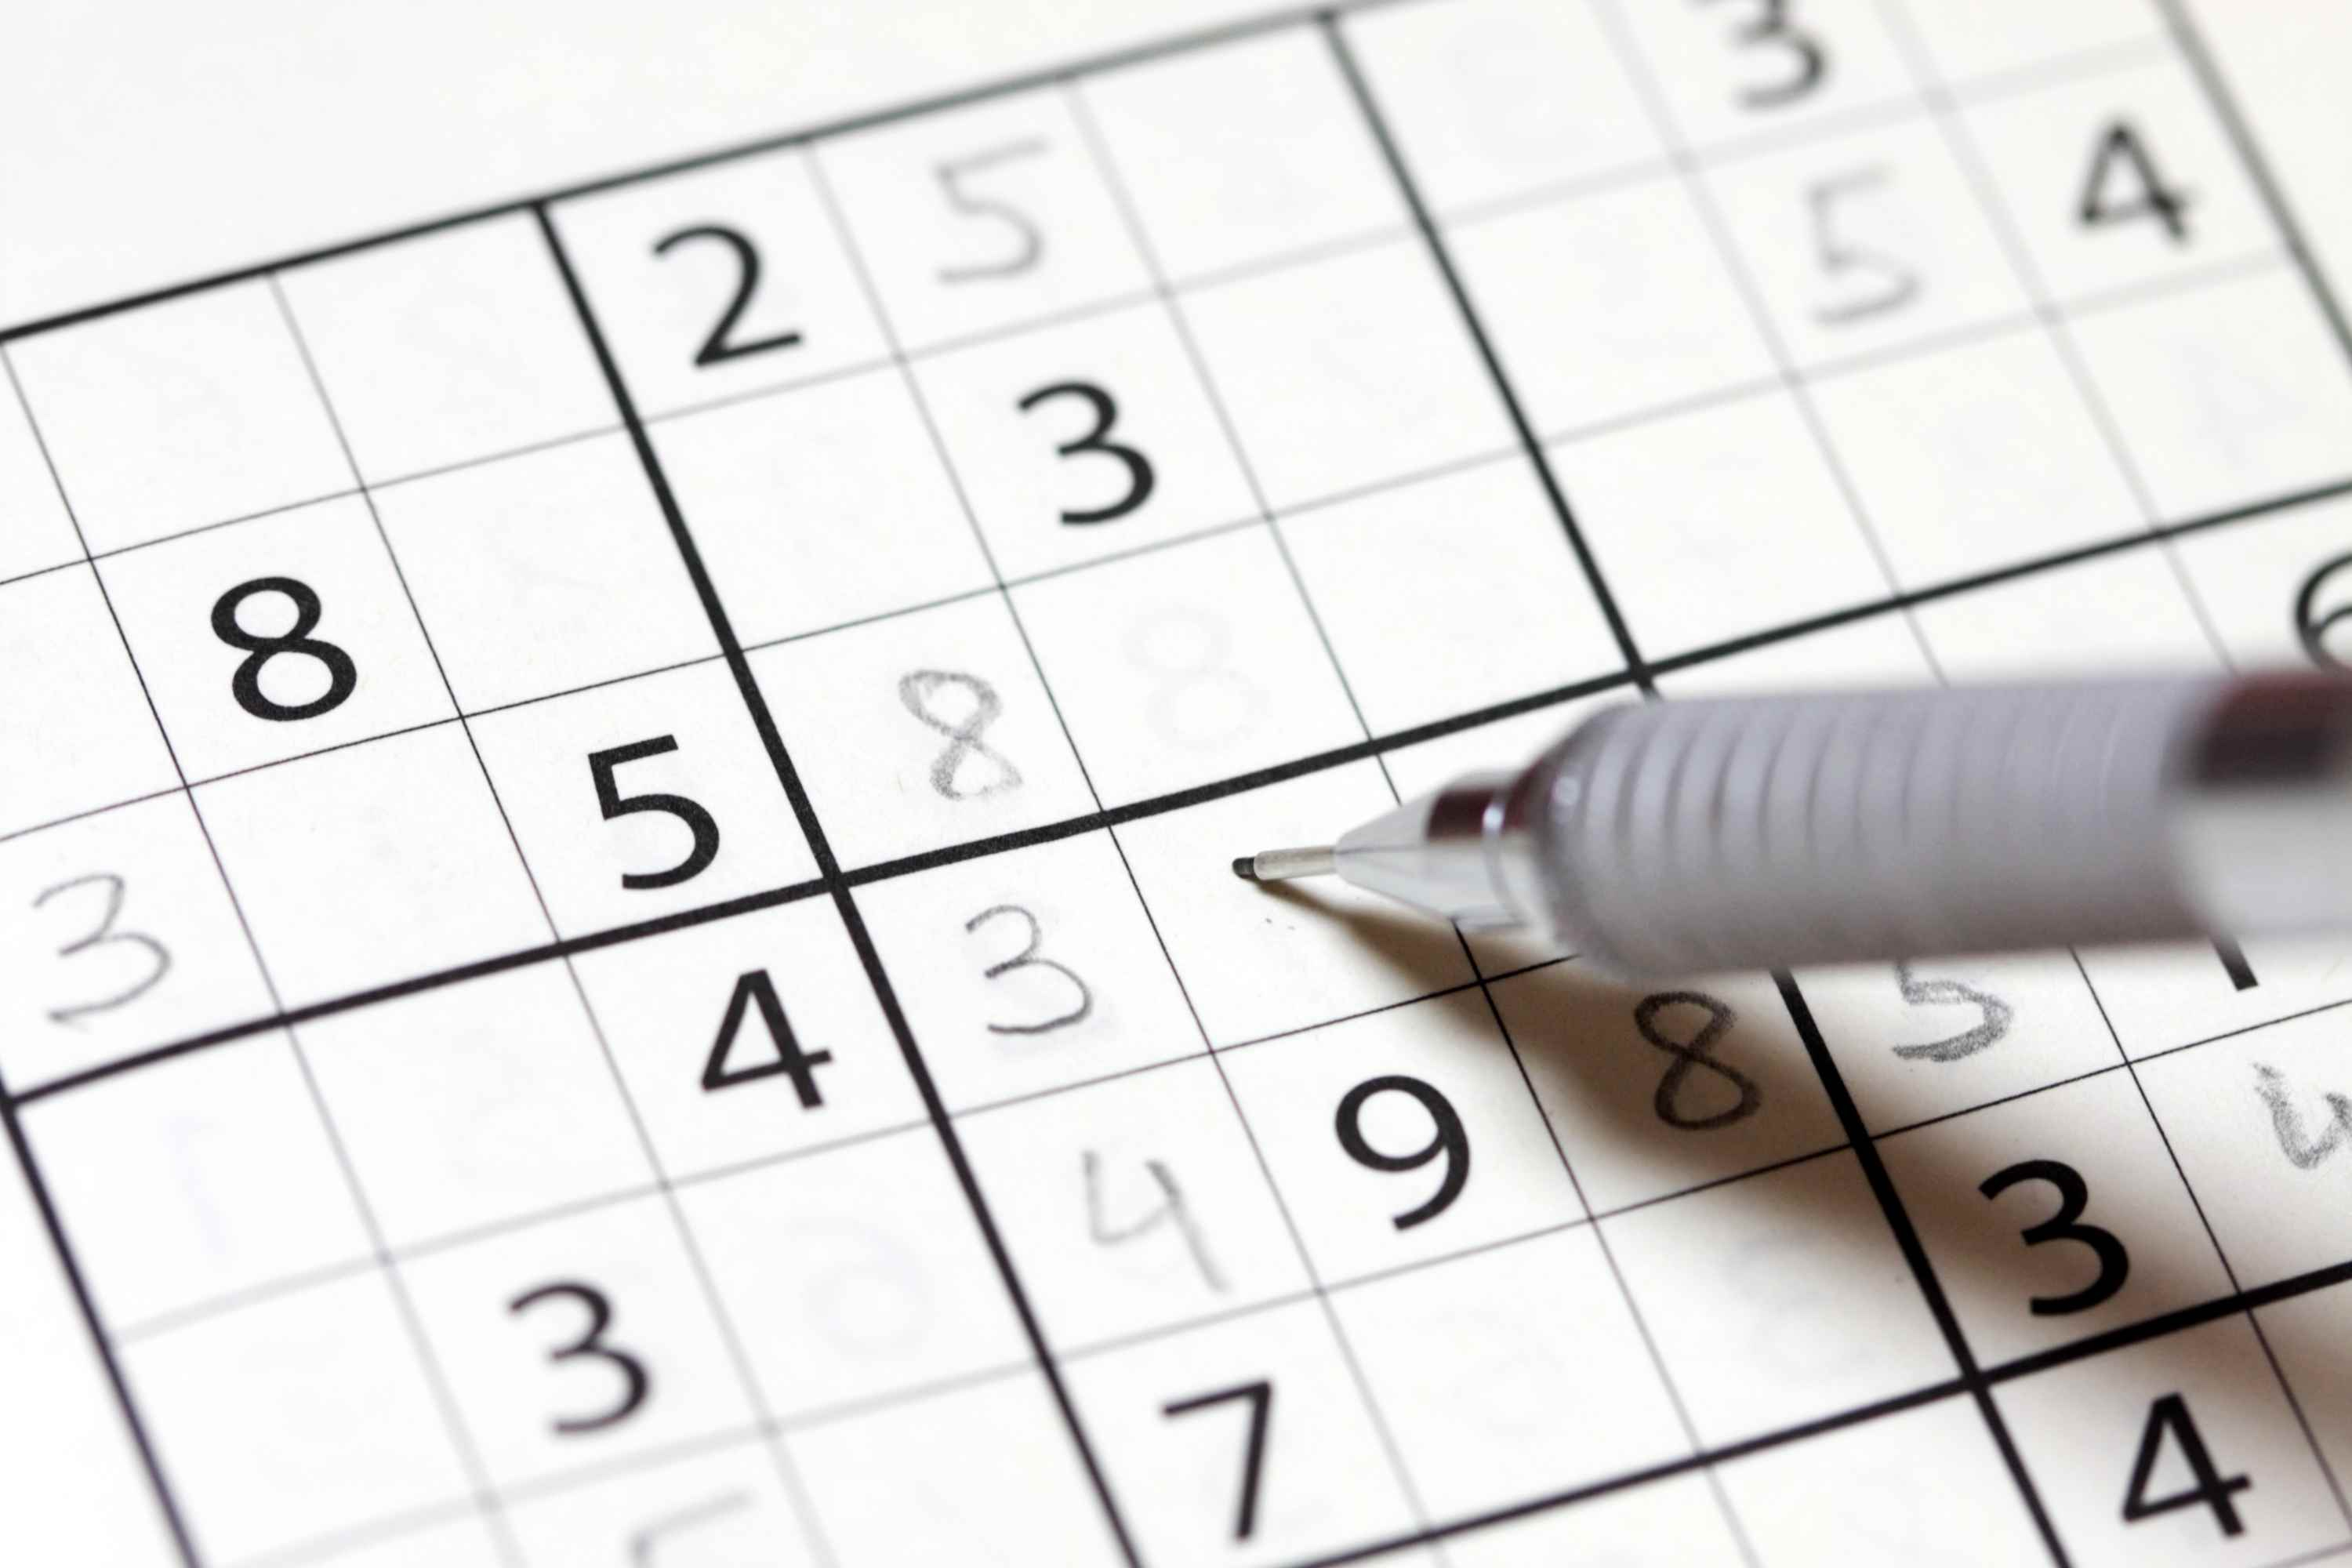 Free Puzzles And Games To Play Online Or Print - Printable Syllacrostic Puzzles